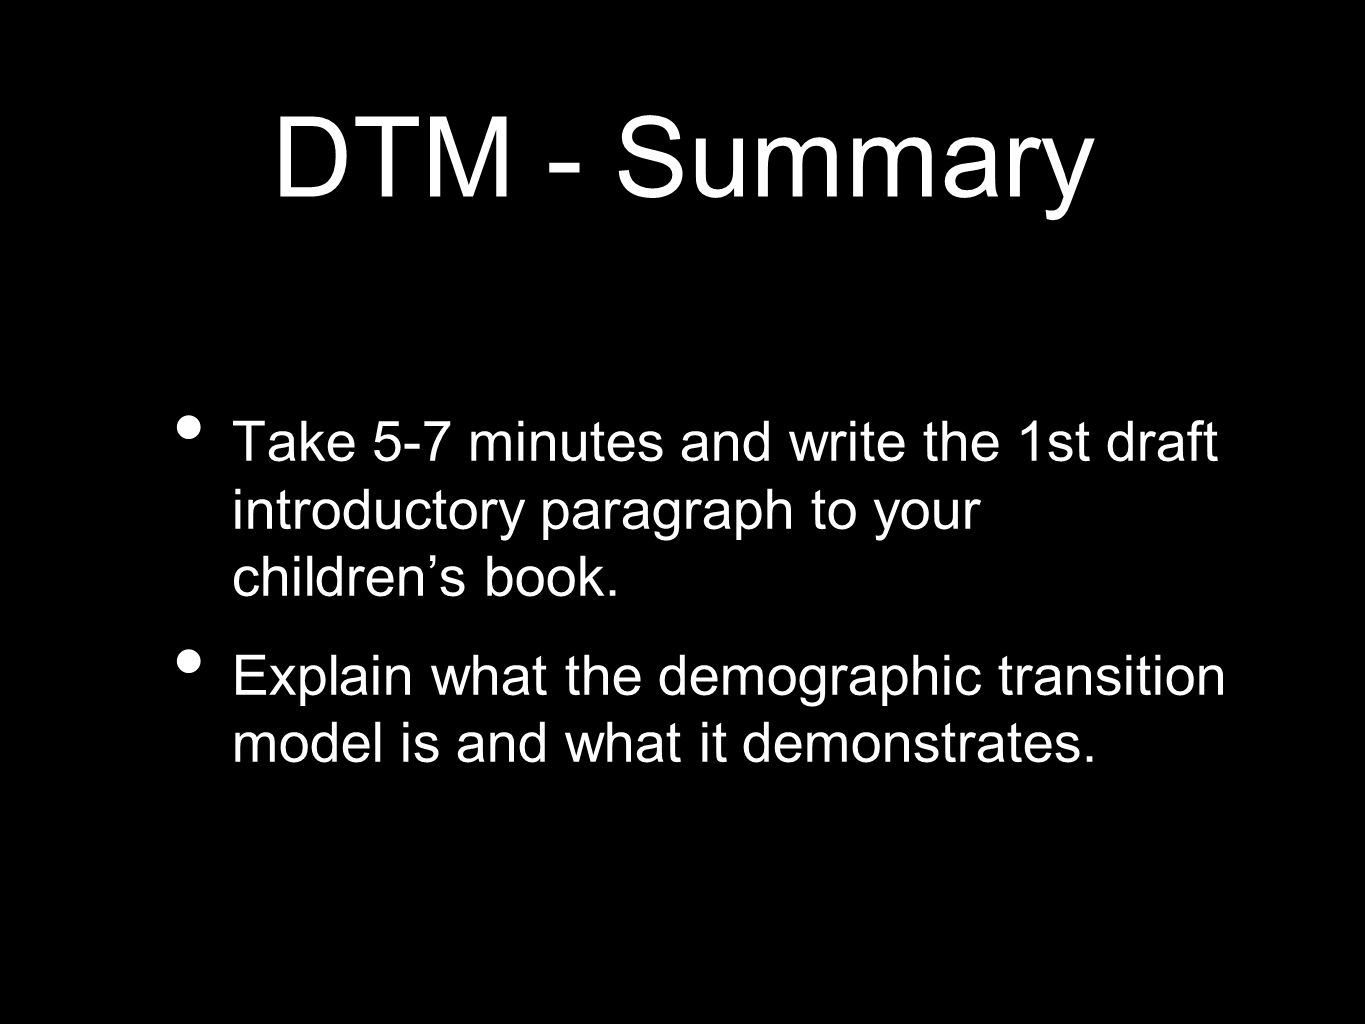 DTM - Summary Take 5-7 minutes and write the 1st draft introductory paragraph to your childrens book. Explain what the demographic transition model is